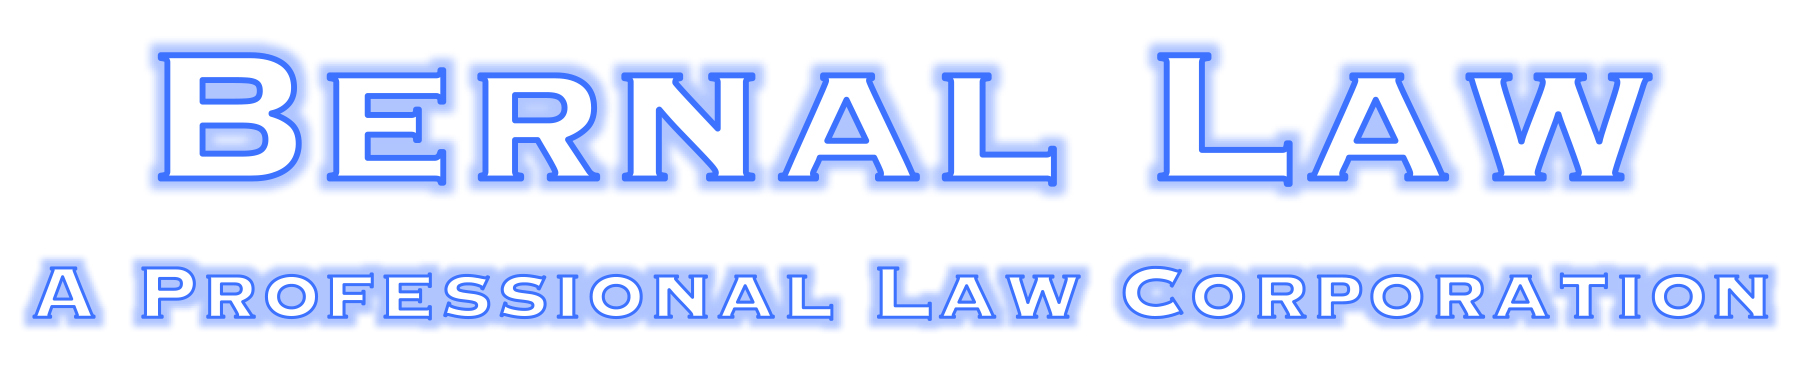 bernal law